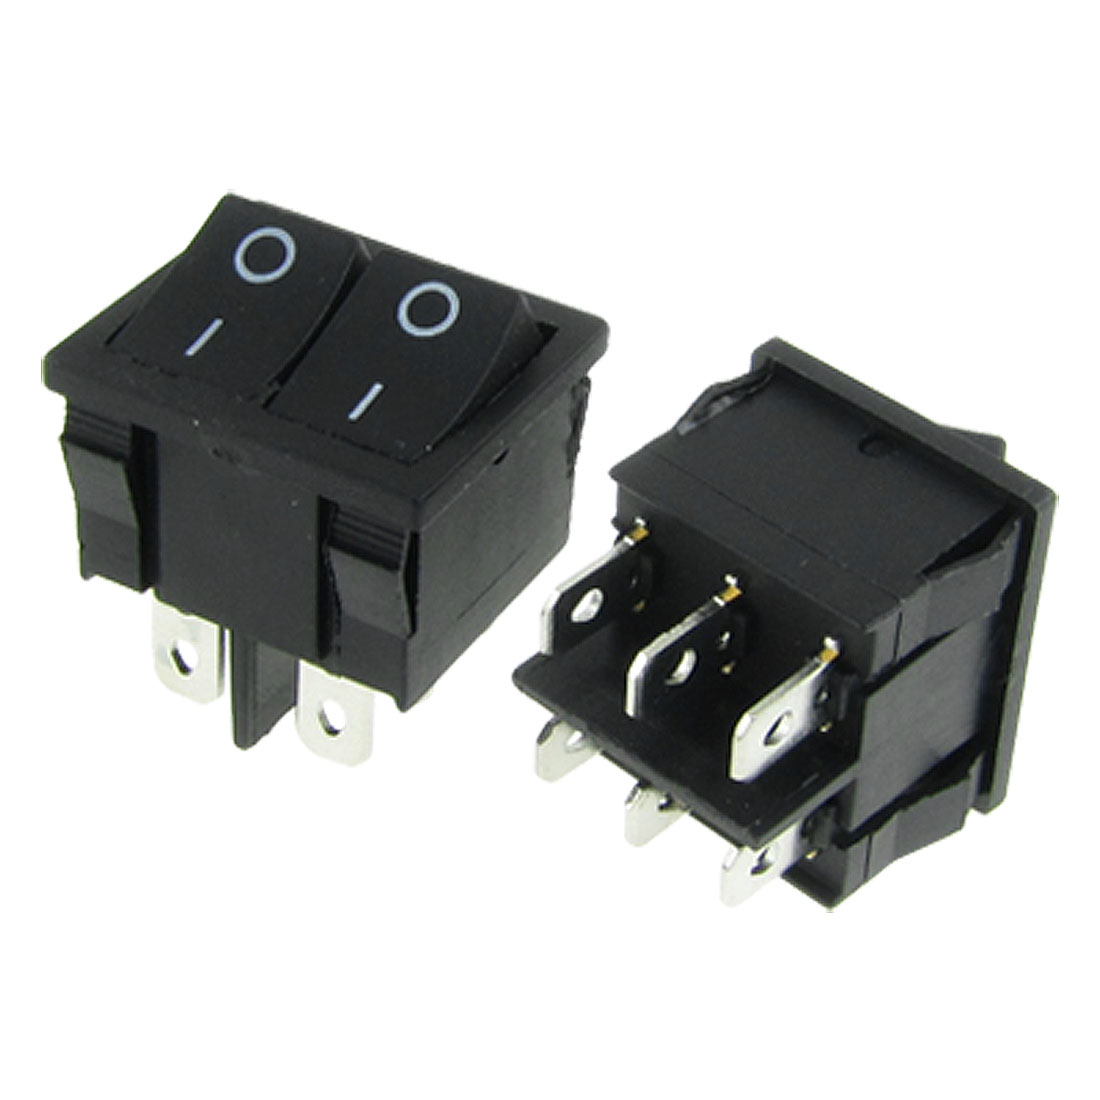 2pcs 6 Pin Double SPDT On-On Snap in Boat Rocker Switch 6A/250V 10A/125V AC Black